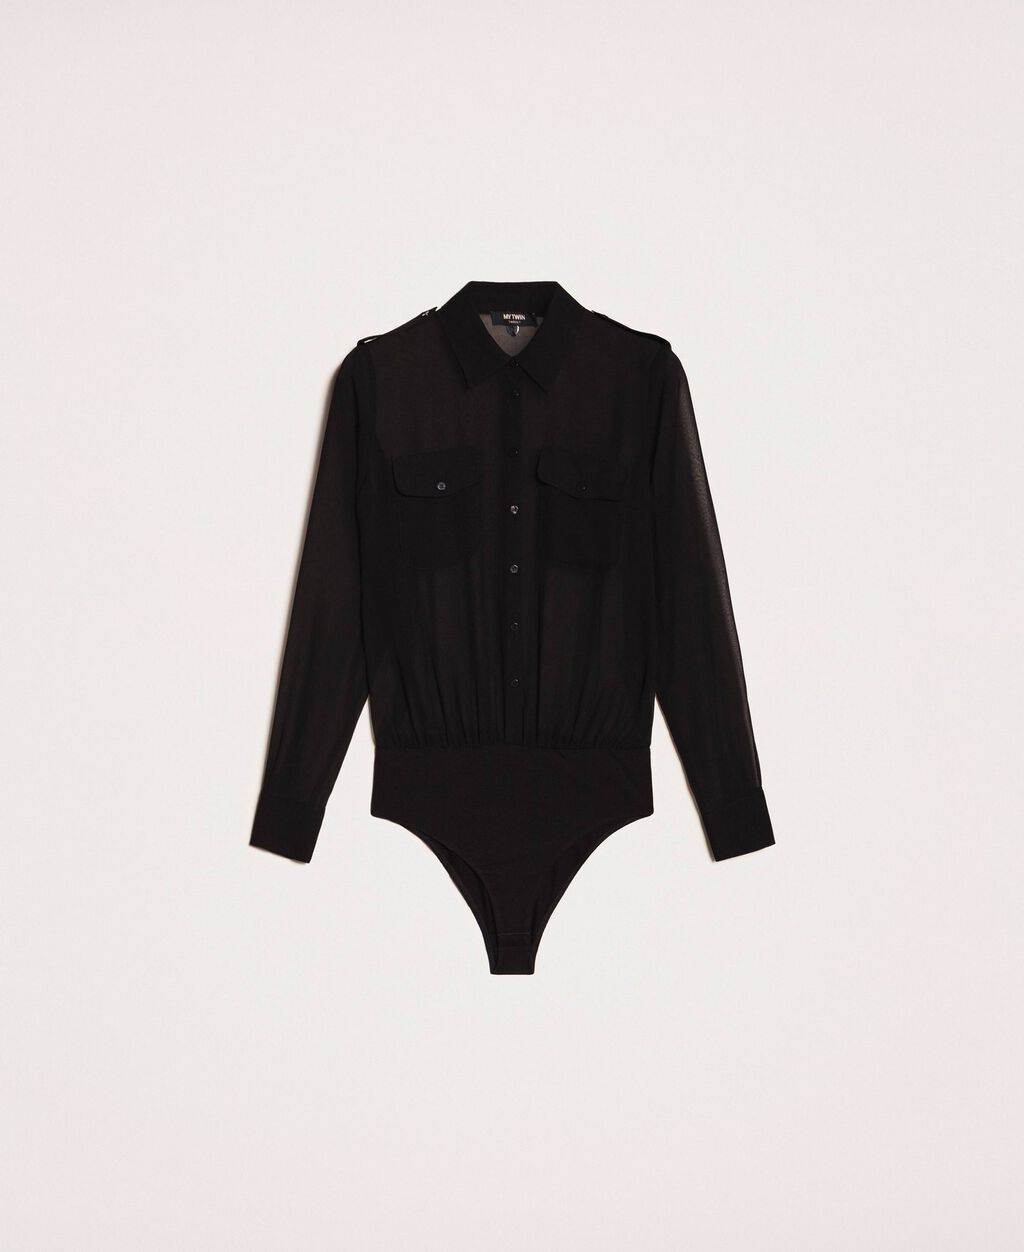 Georgette body shirt